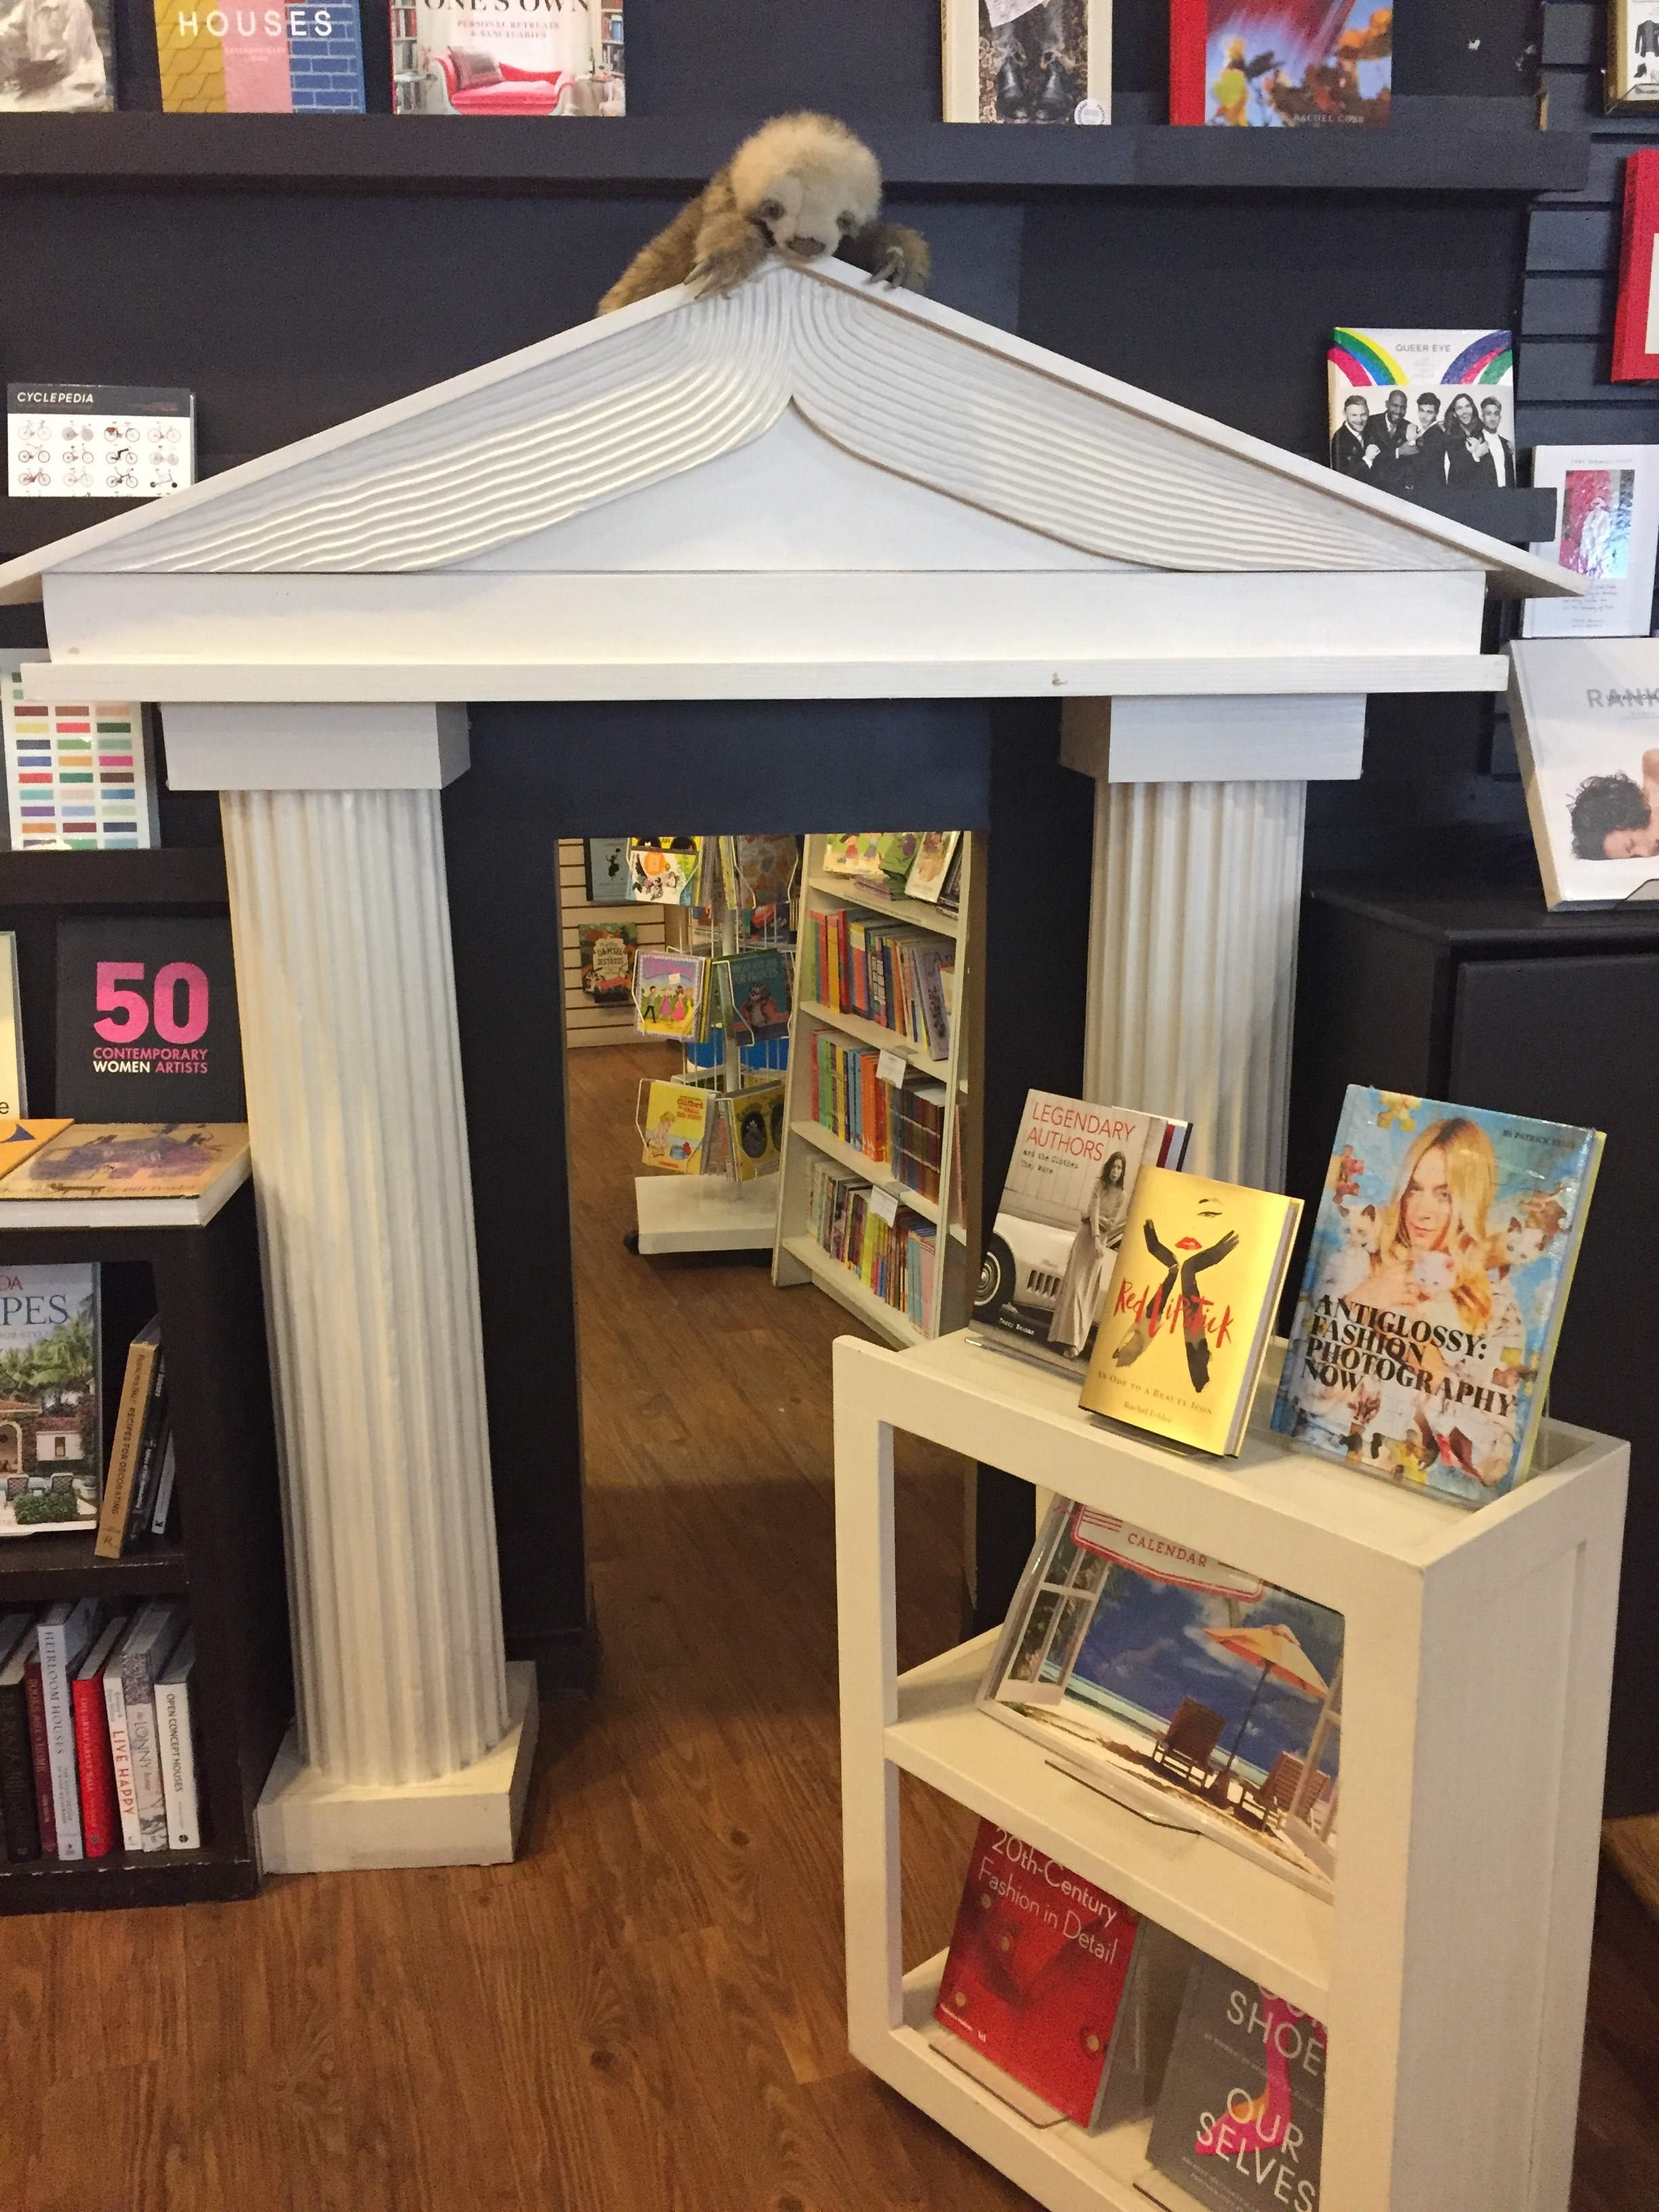 image description: The entrance to the children's section of the store. It has a tiny doorway with Greek columns and a roof styled like an open book.